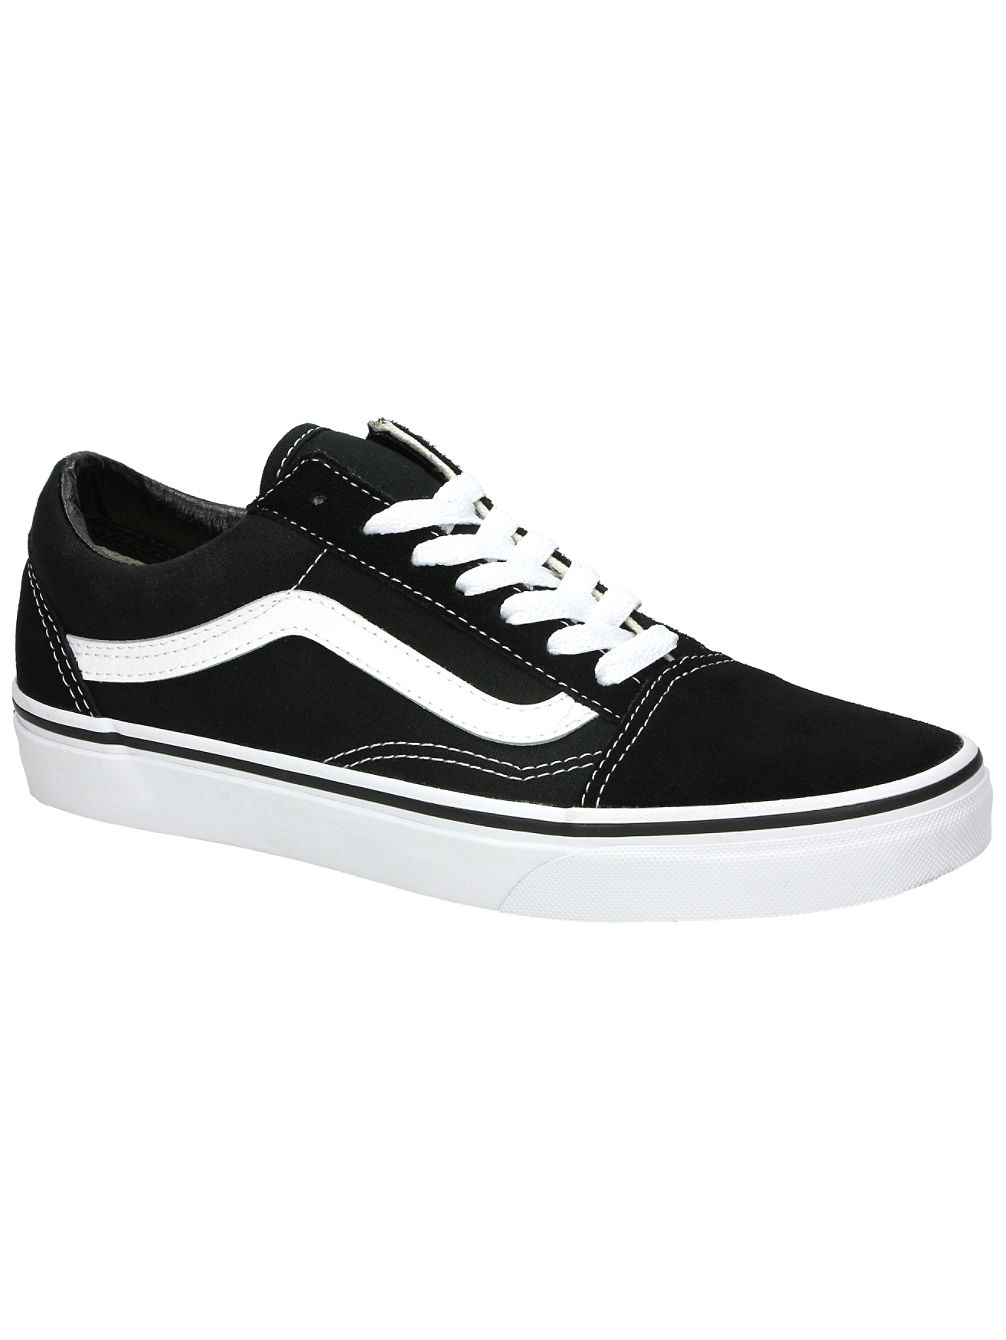 de0c9286f2 Buy Vans Old Skool Sneakers online at Blue Tomato